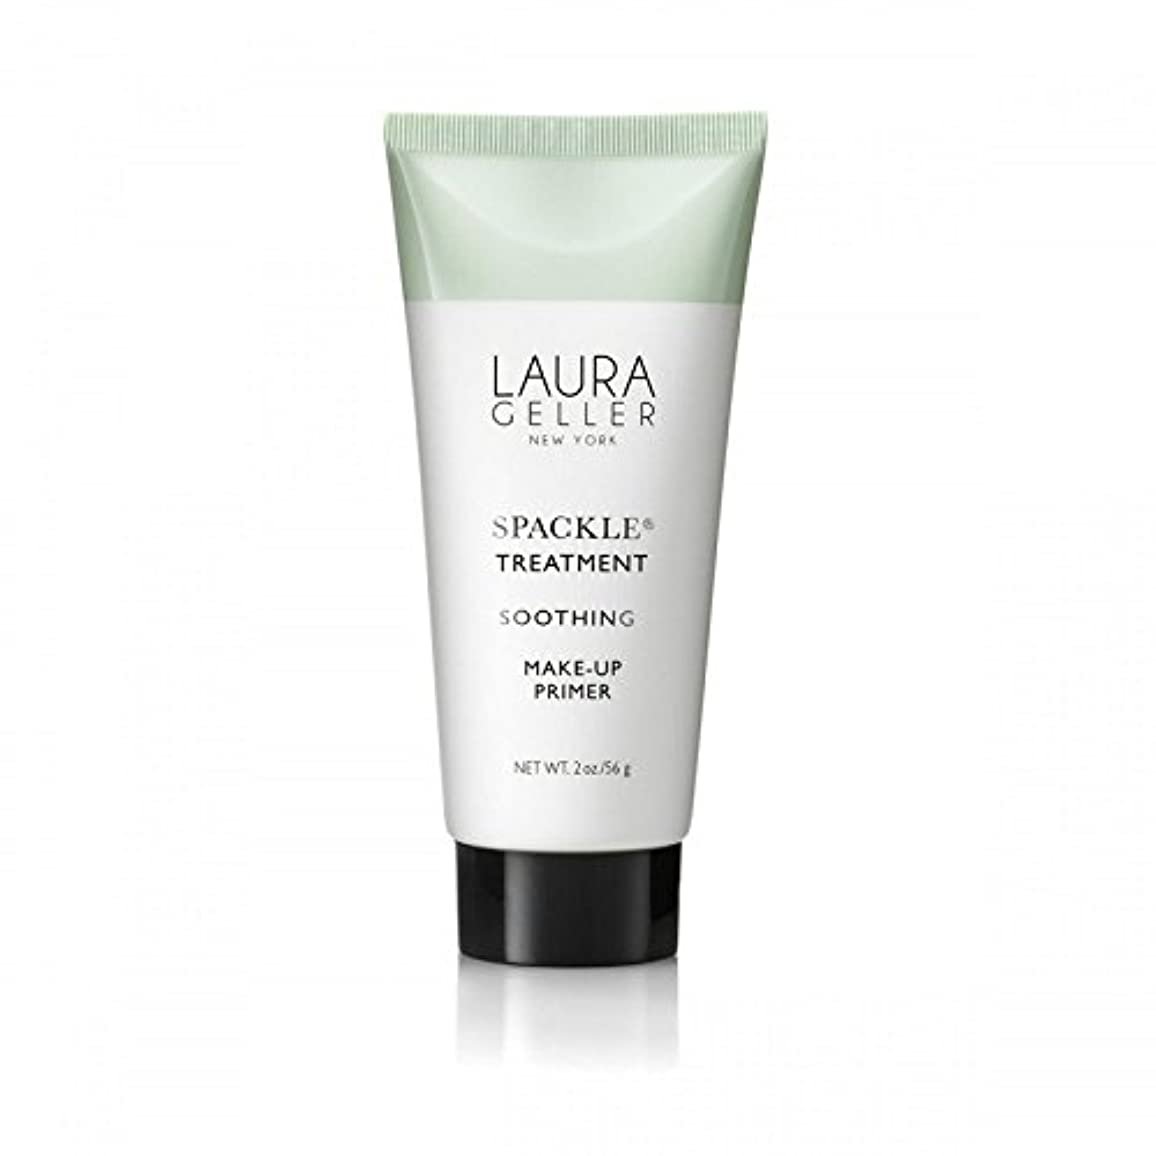 Laura Geller Spackle Treatment Under Make-Up Primer Soothing (Pack of 6) - メイクアッププライマー癒しの下のローラ?ゲラー 処理 x6 [並行輸入品]